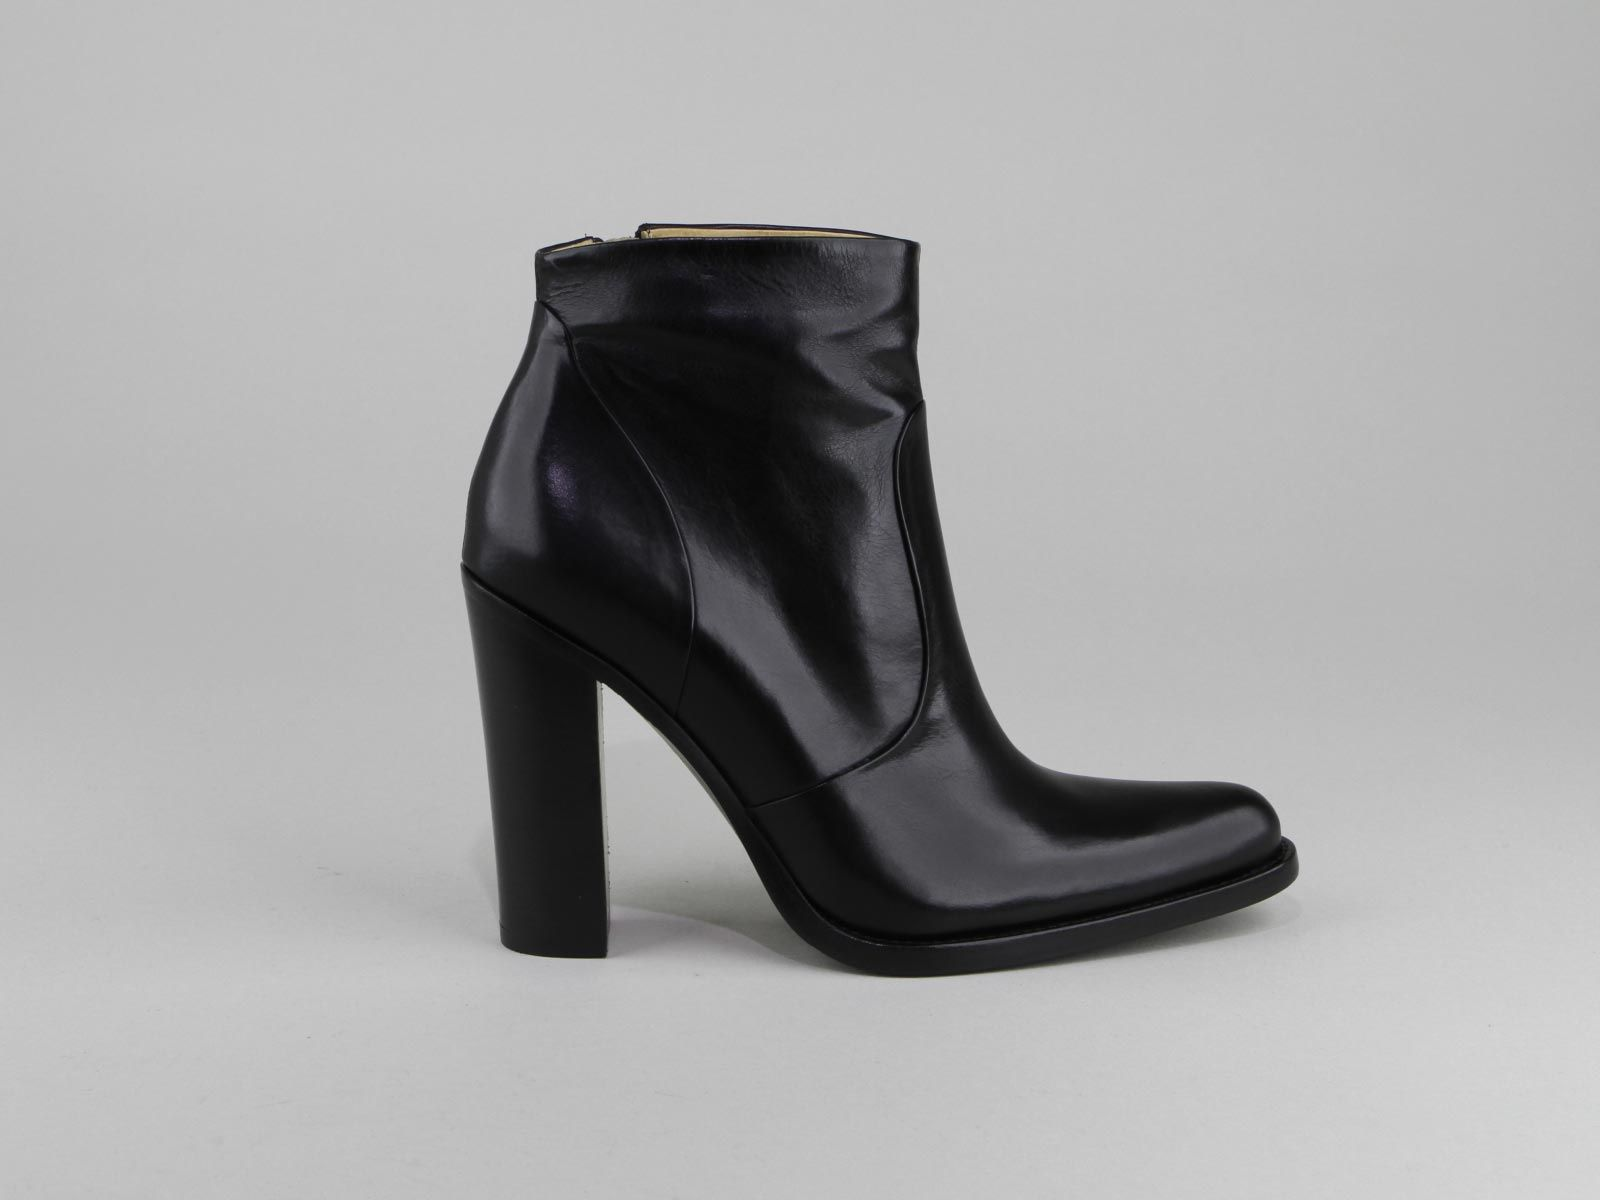 free lance queenie 9 low zip boot chaussures femme boots chaussures femme pinterest. Black Bedroom Furniture Sets. Home Design Ideas